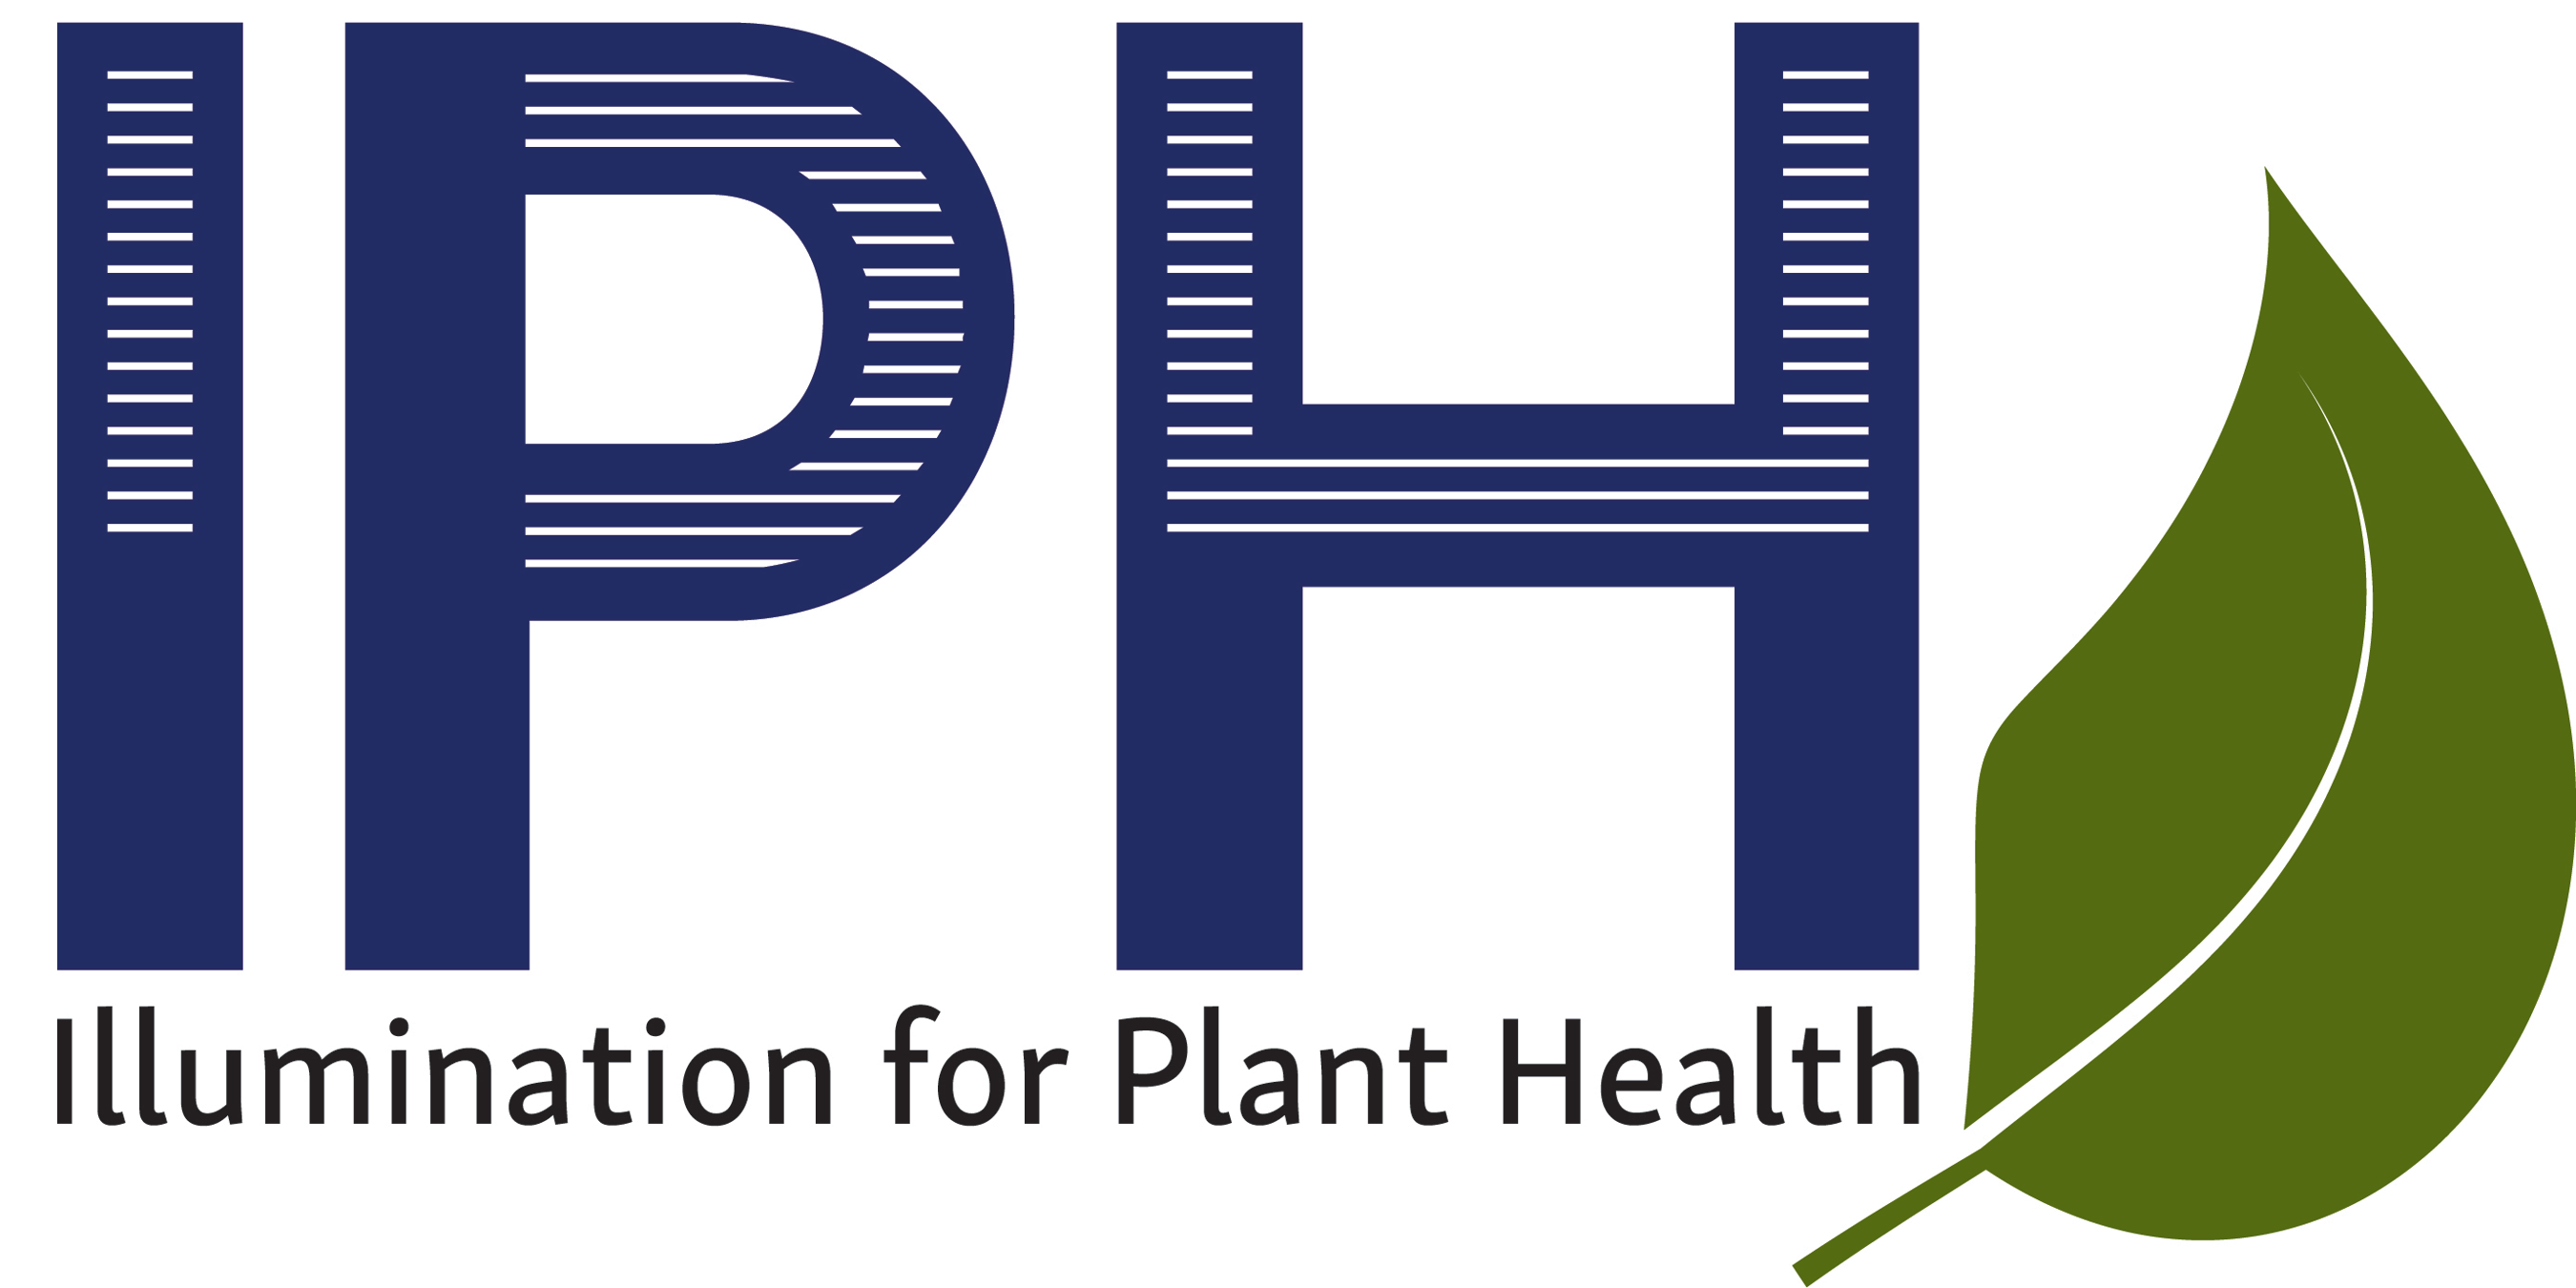 Illumination for Plant Health (IPH) program u2014 Advancing sustainable innovative strategies for plant disease control using the latest lighting technologies.  sc 1 st  Rensselaer Polytechnic Institute & Lighting Research Center